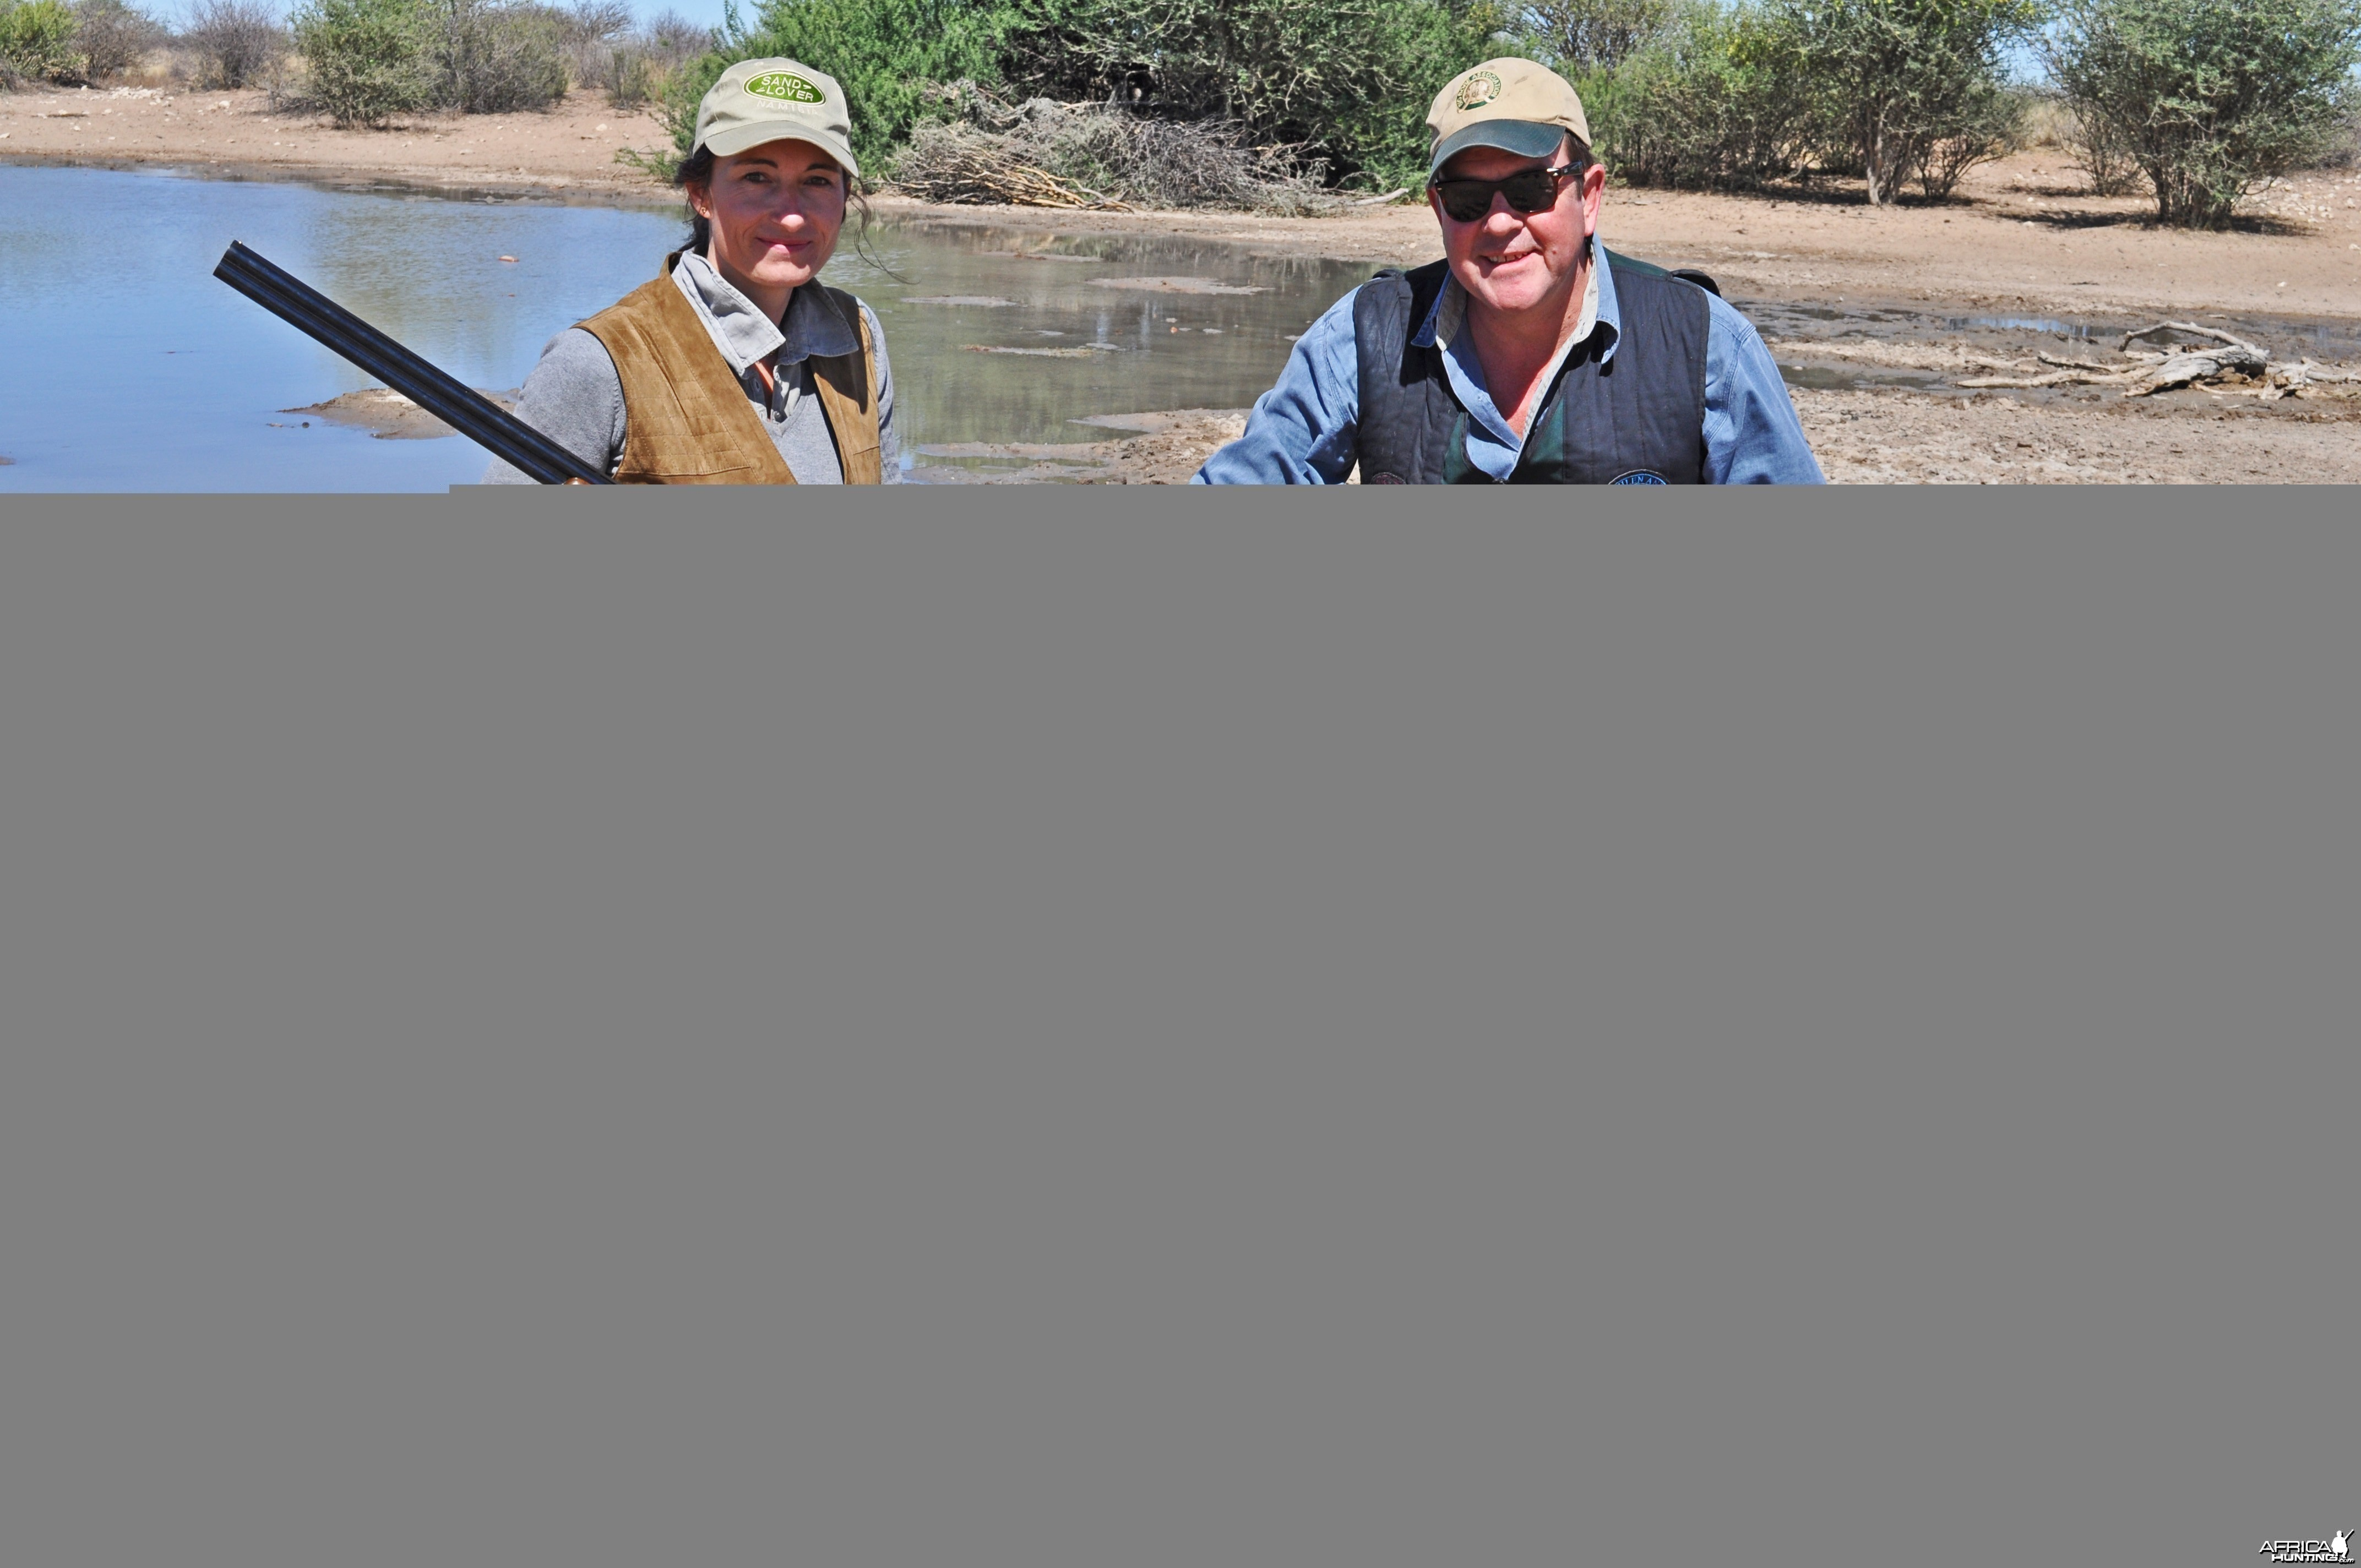 Wing Shooting - Kowas Hunting Safaris